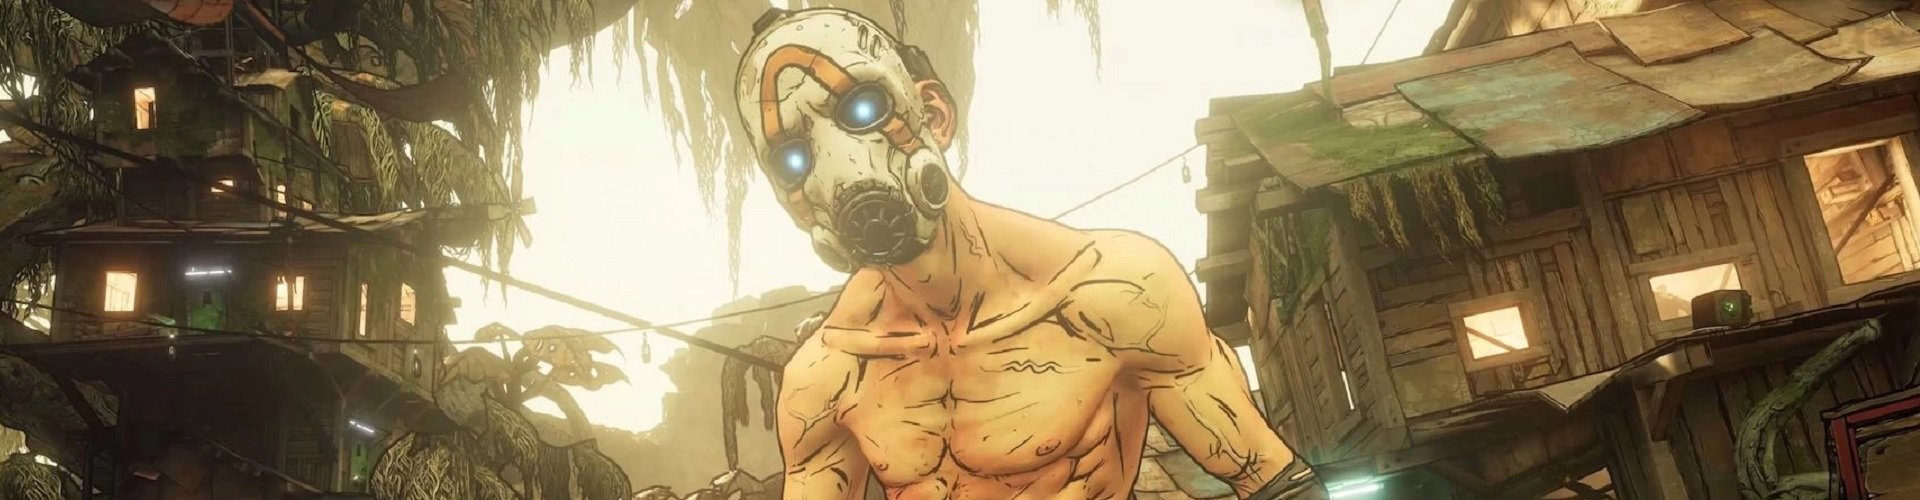 Borderlands 3 guide and walkthrough - psycho